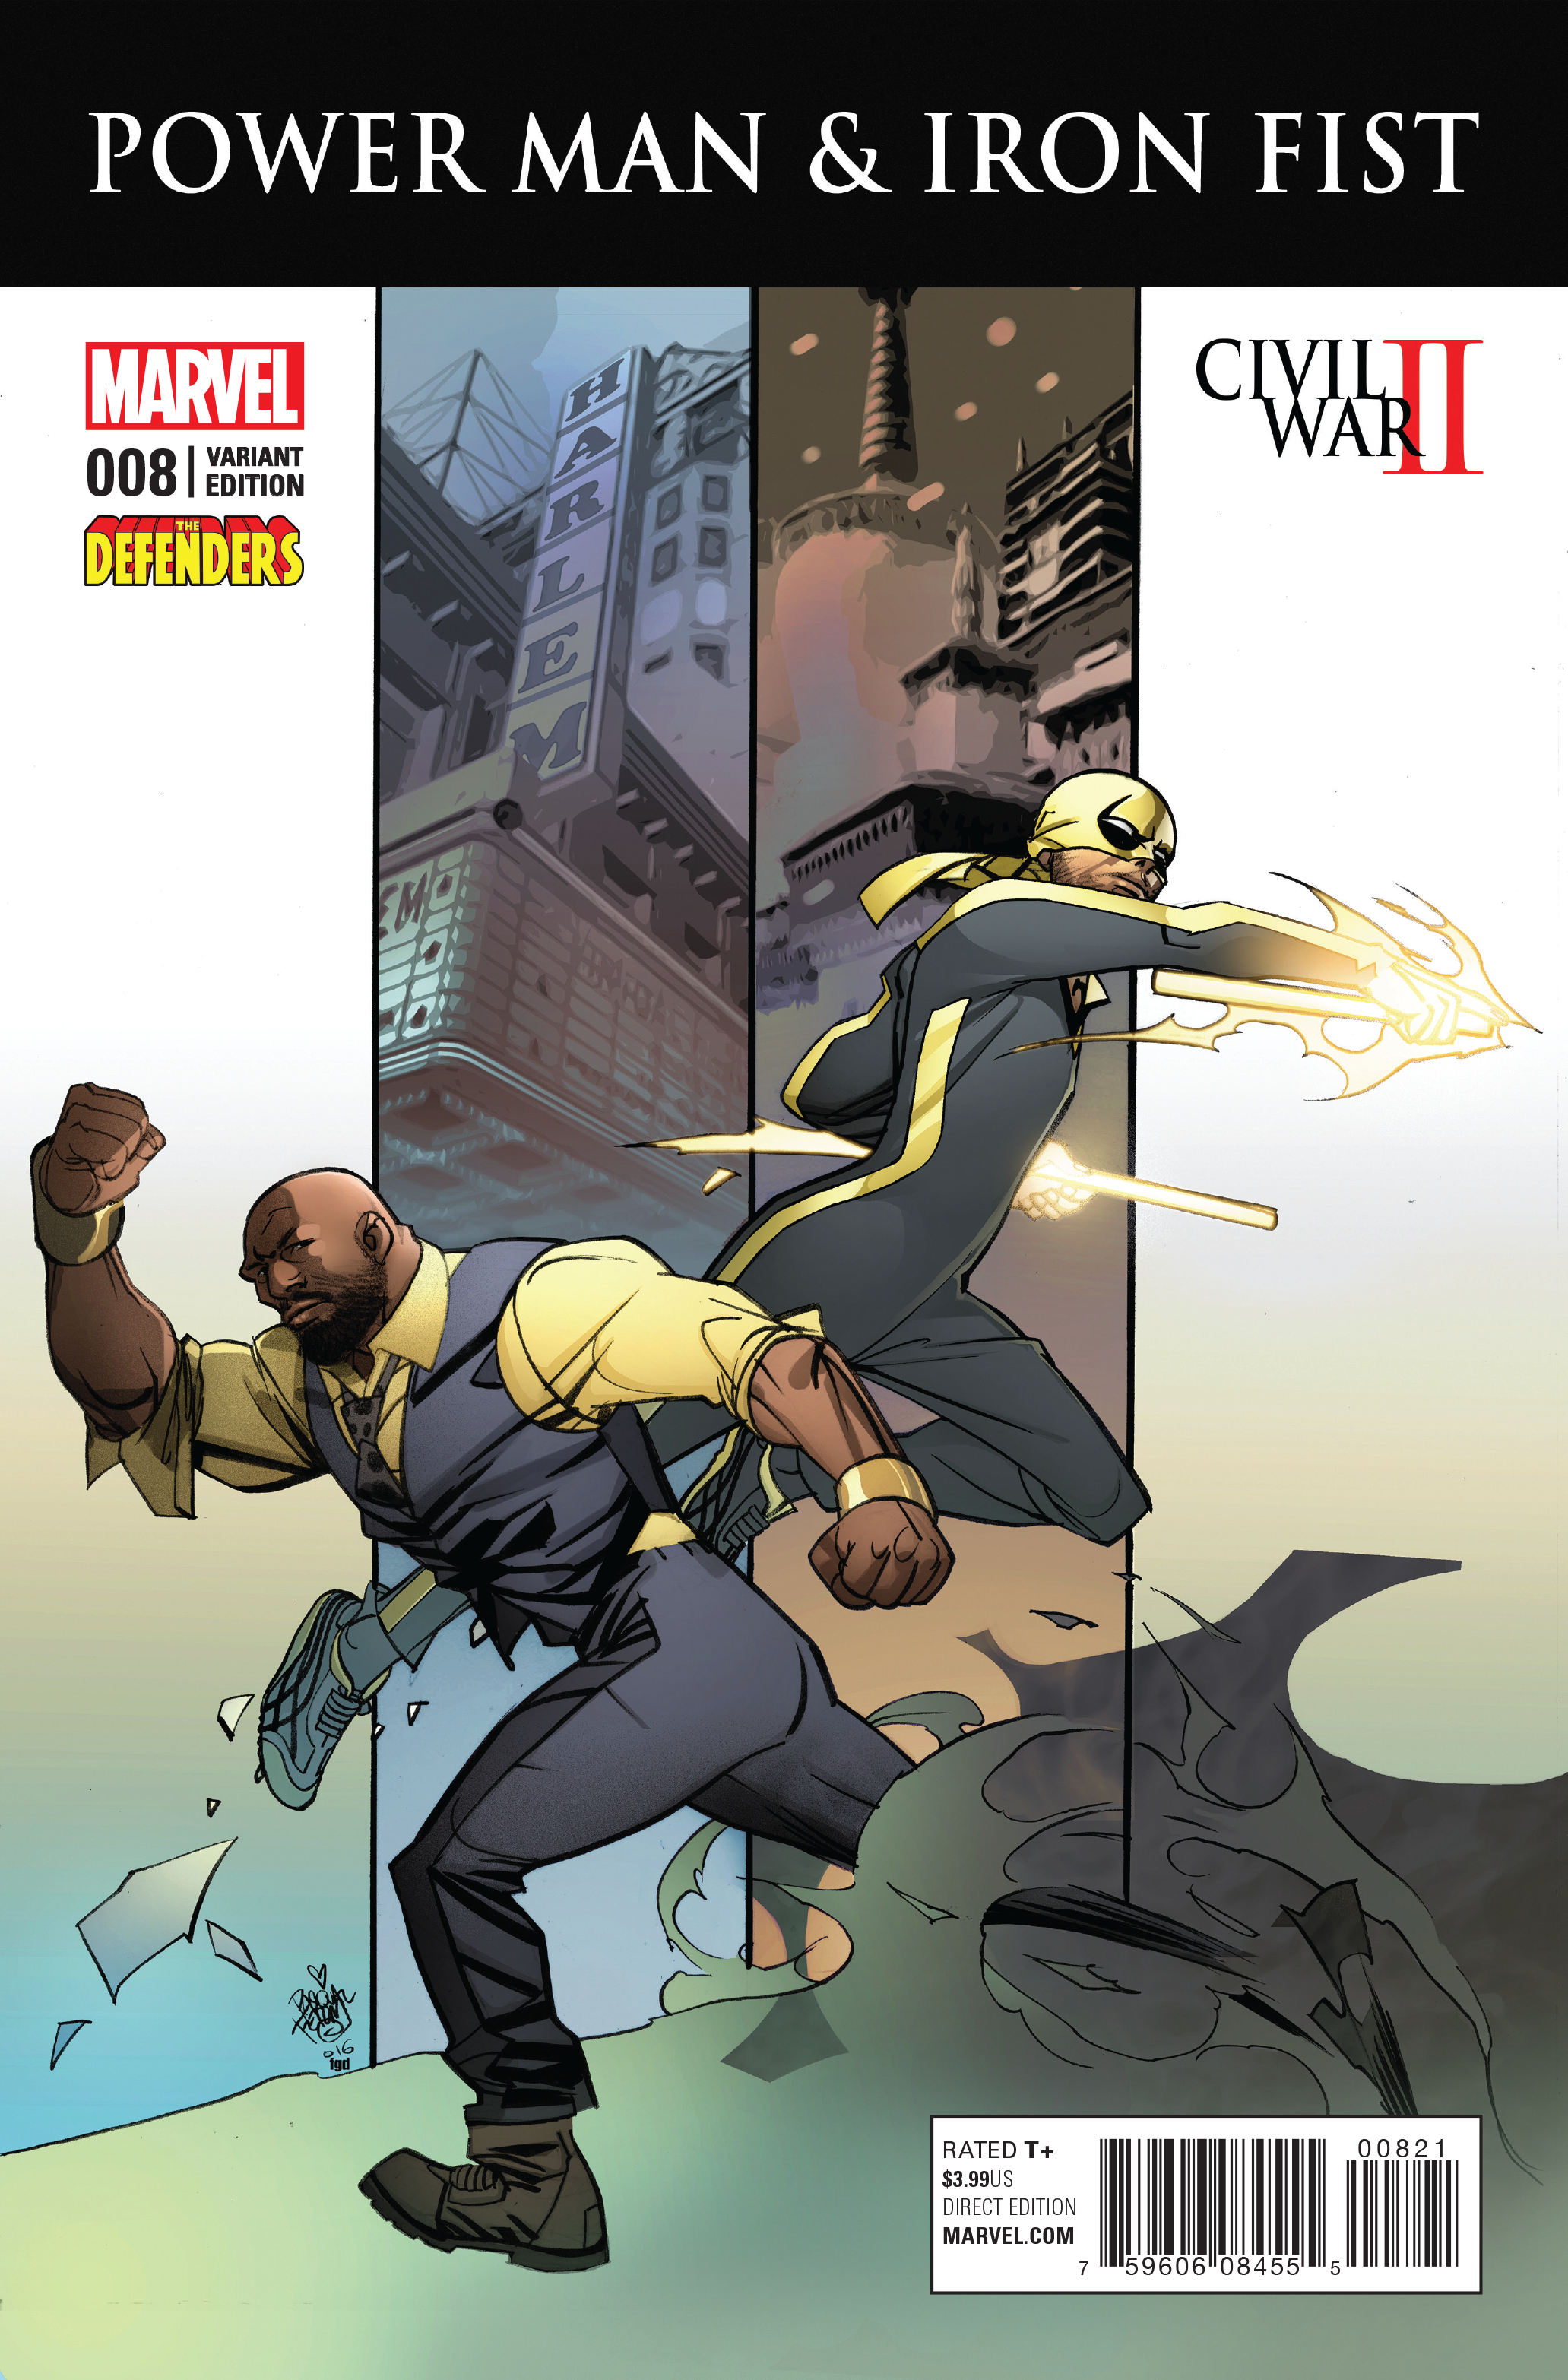 POWER MAN AND IRON FIST #8 DEFENDERS VAR CW2